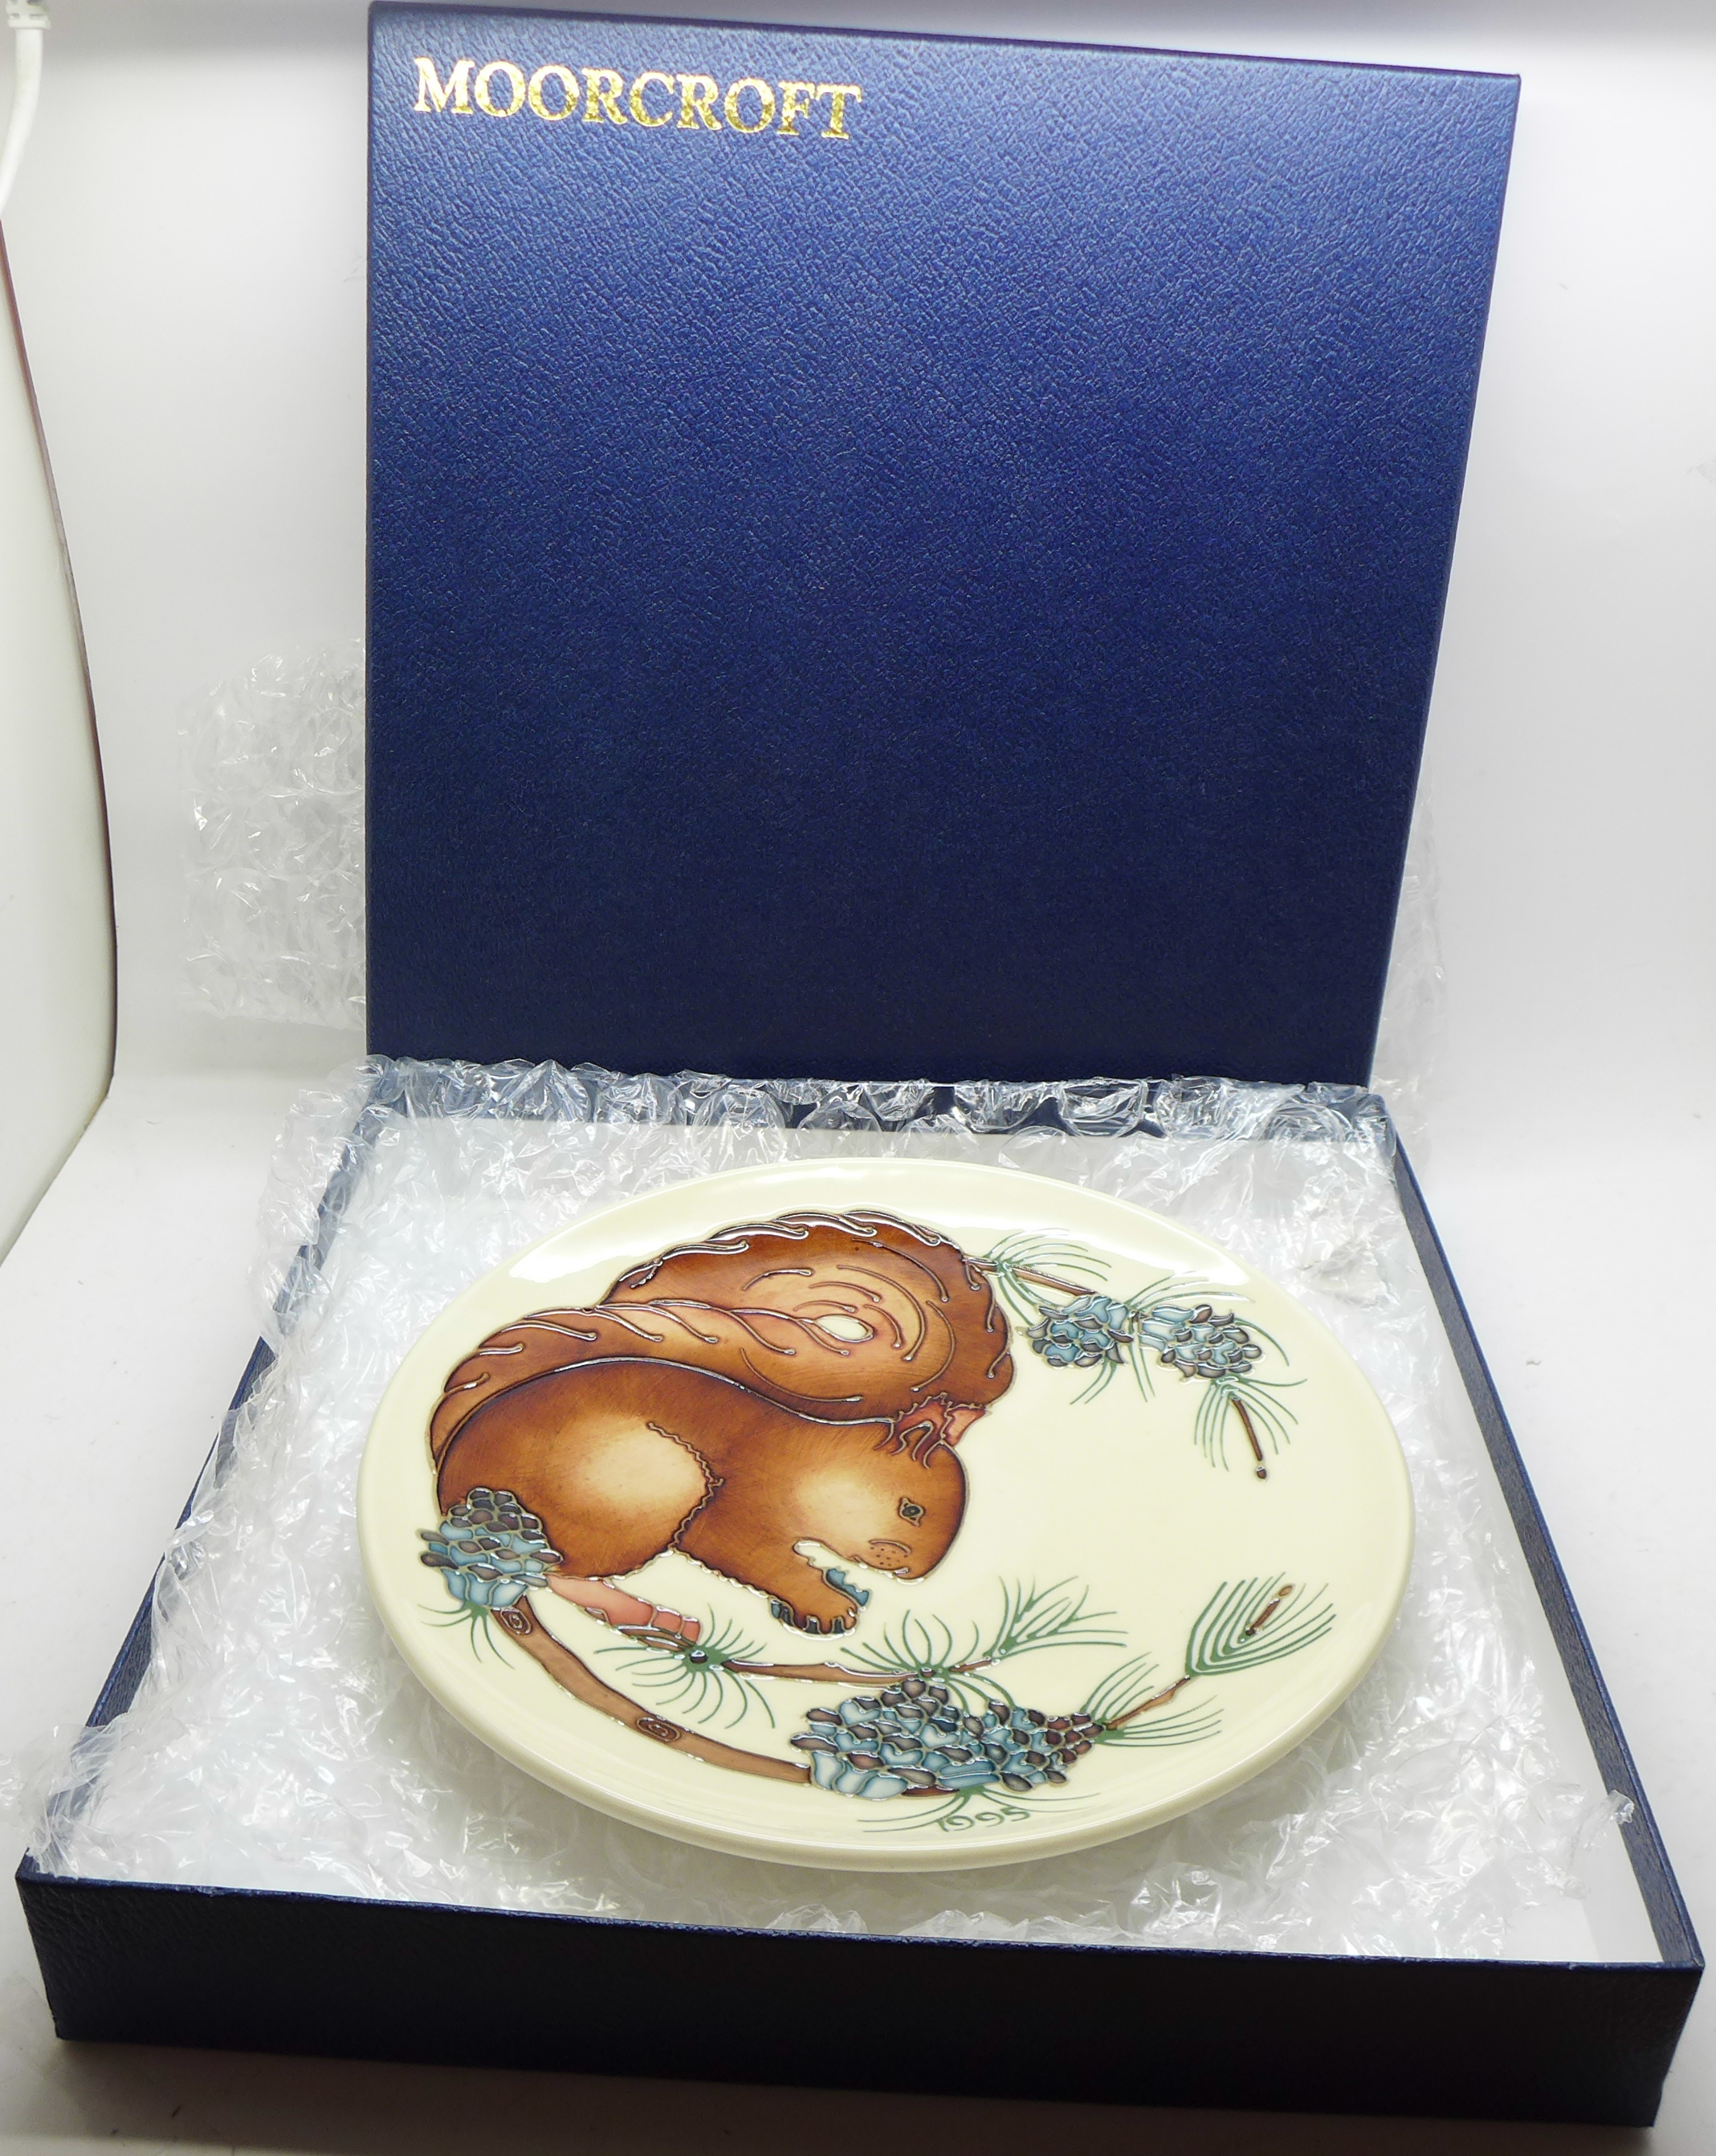 A Moorcroft Limited Edition Year Plate 1995, squirrel design, 300/500, signed and dated 4.11.95, - Image 6 of 6